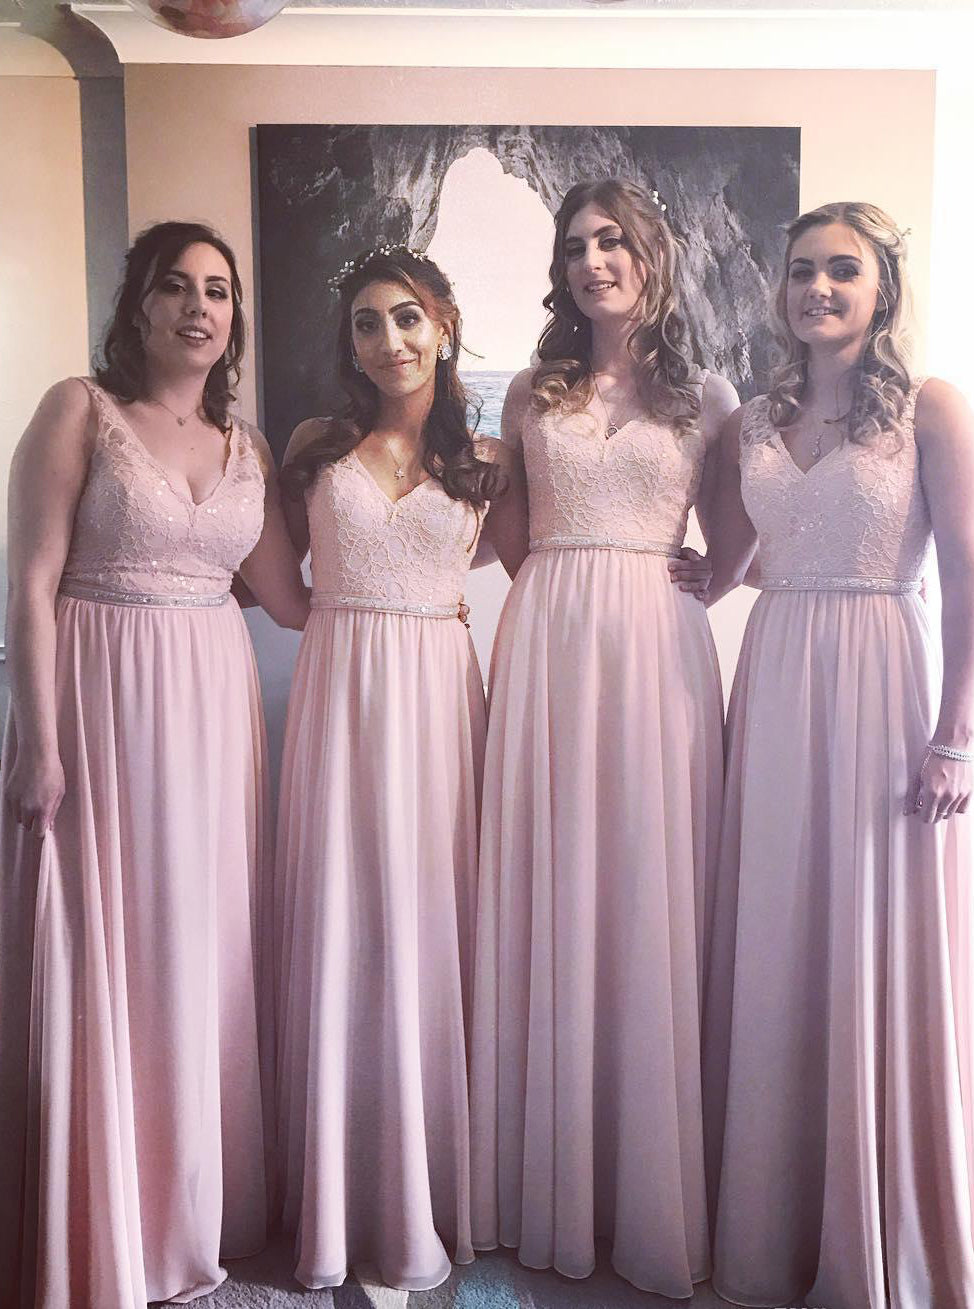 A-line Pink Bridesmaid Dresses Chiffon Lace Long Bridesmaid Dress OB391